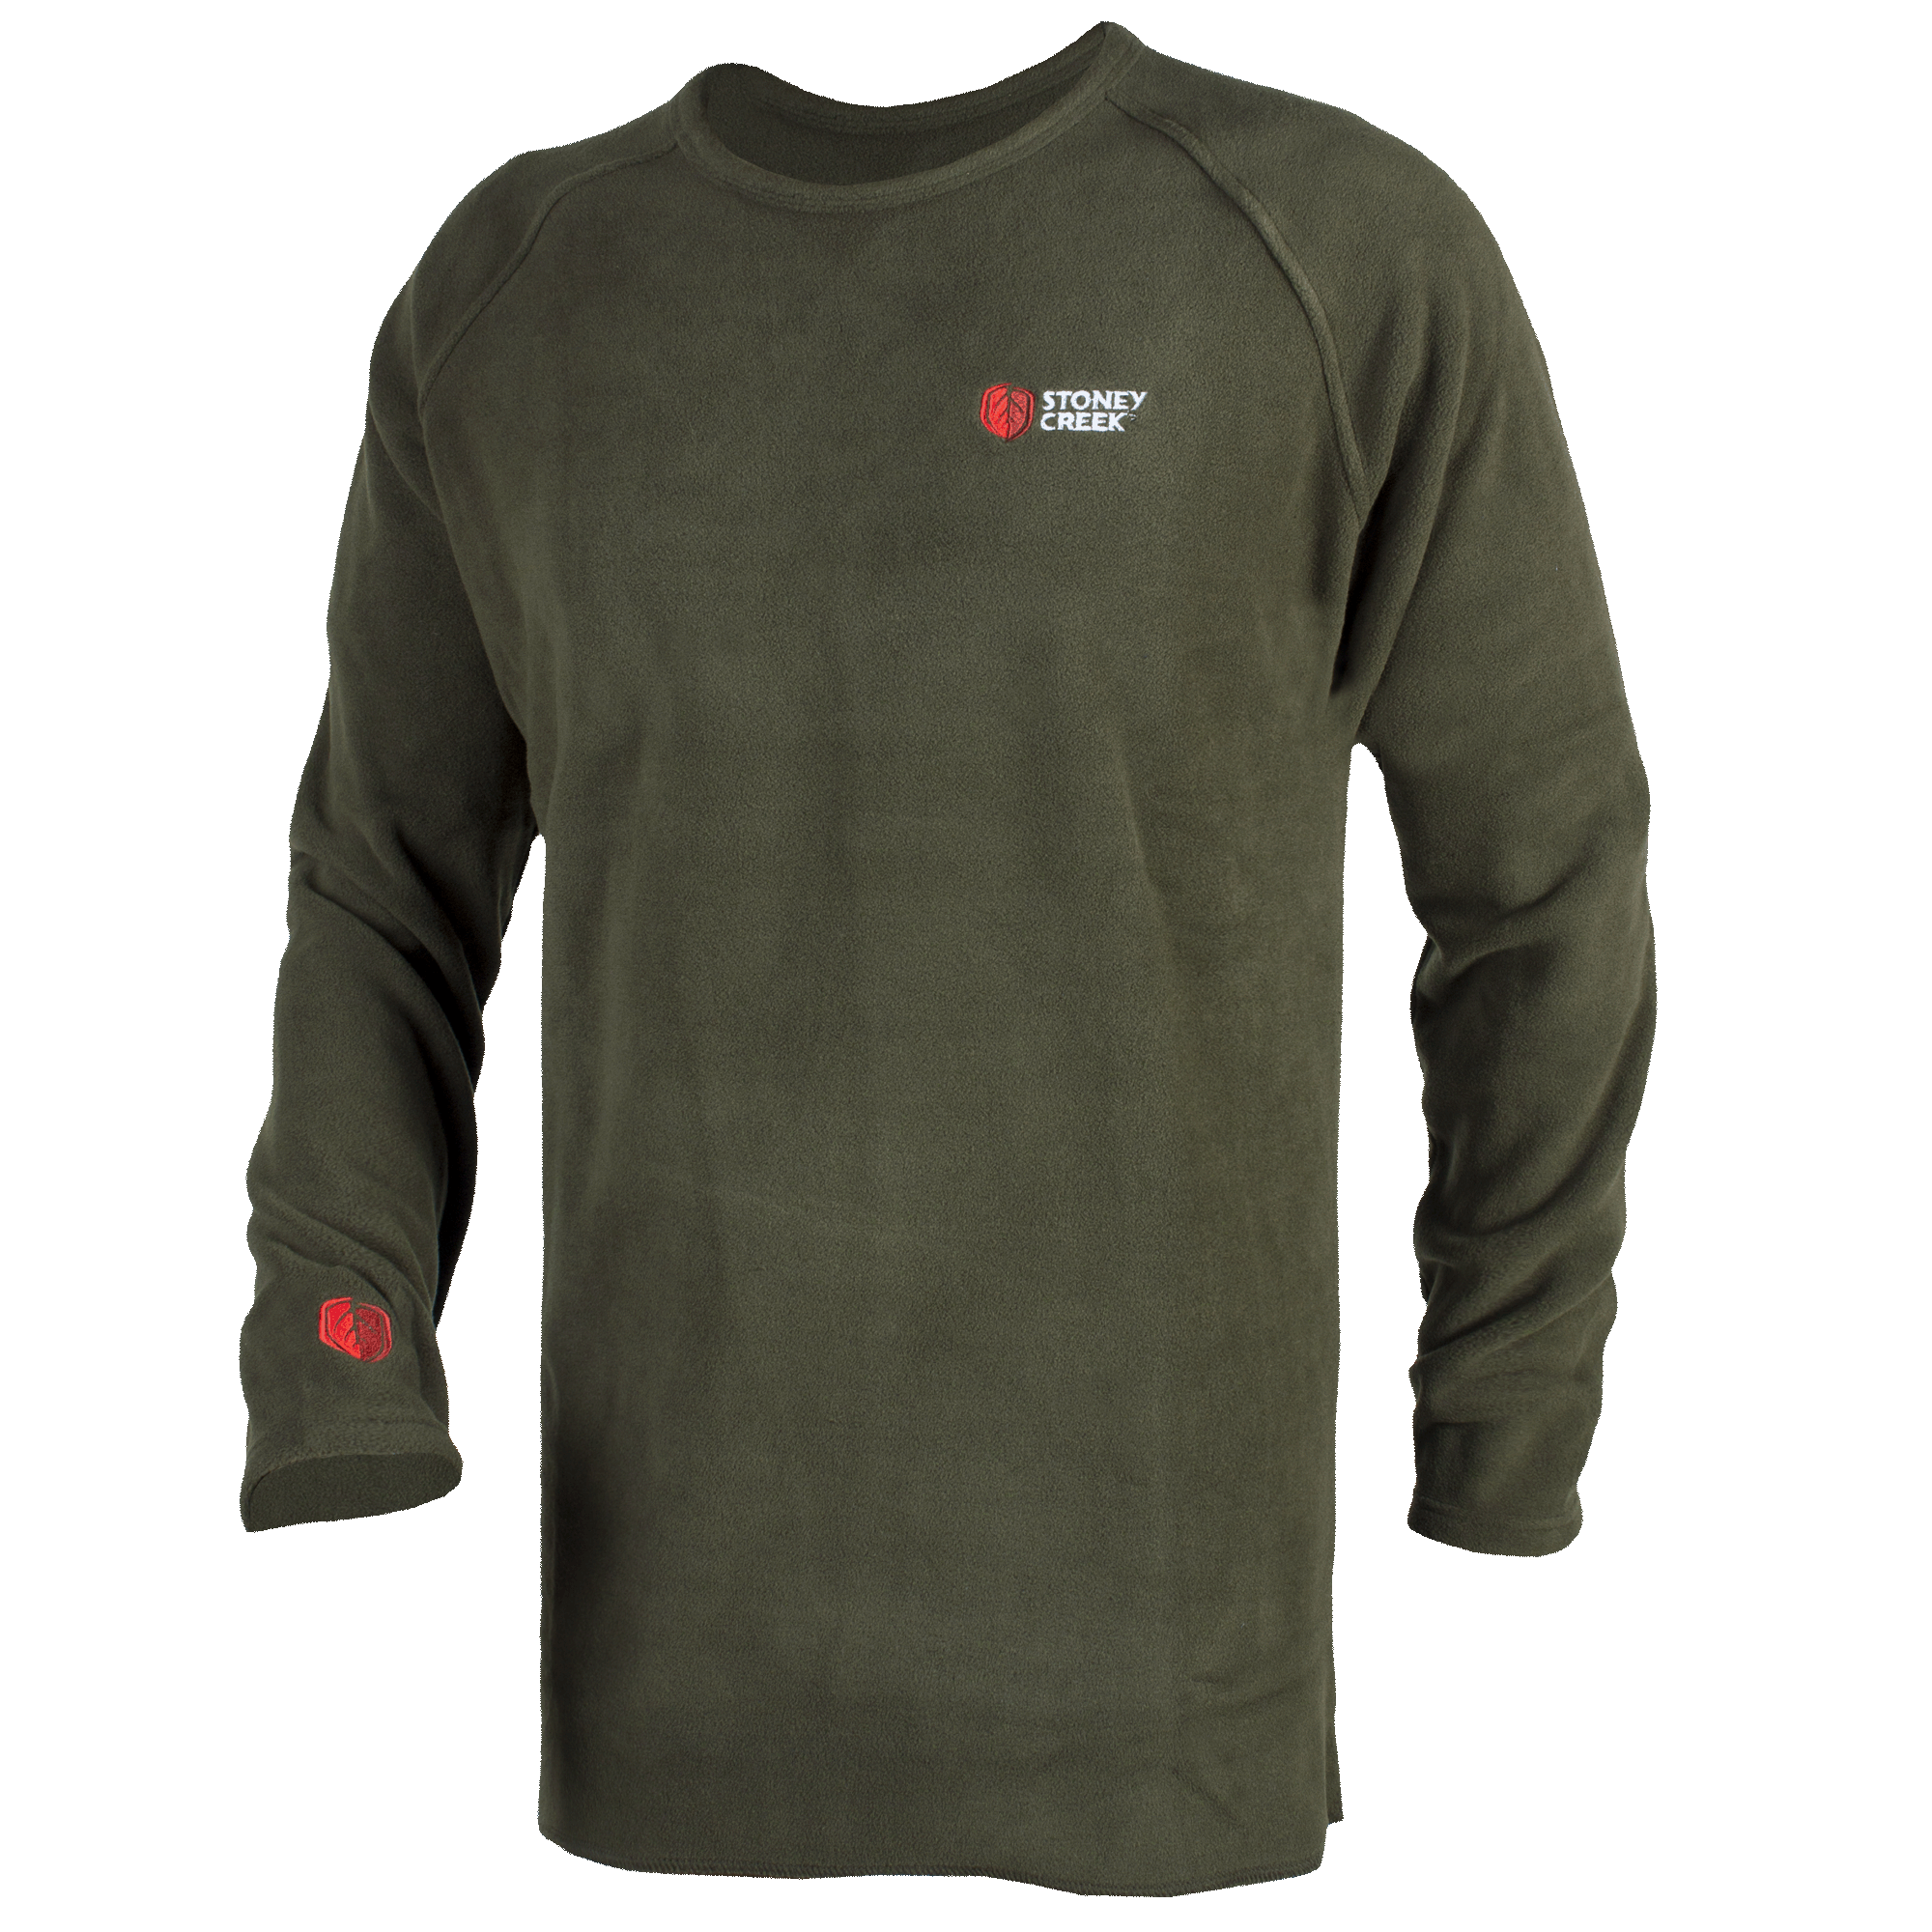 Bush Tee Long Sleeve